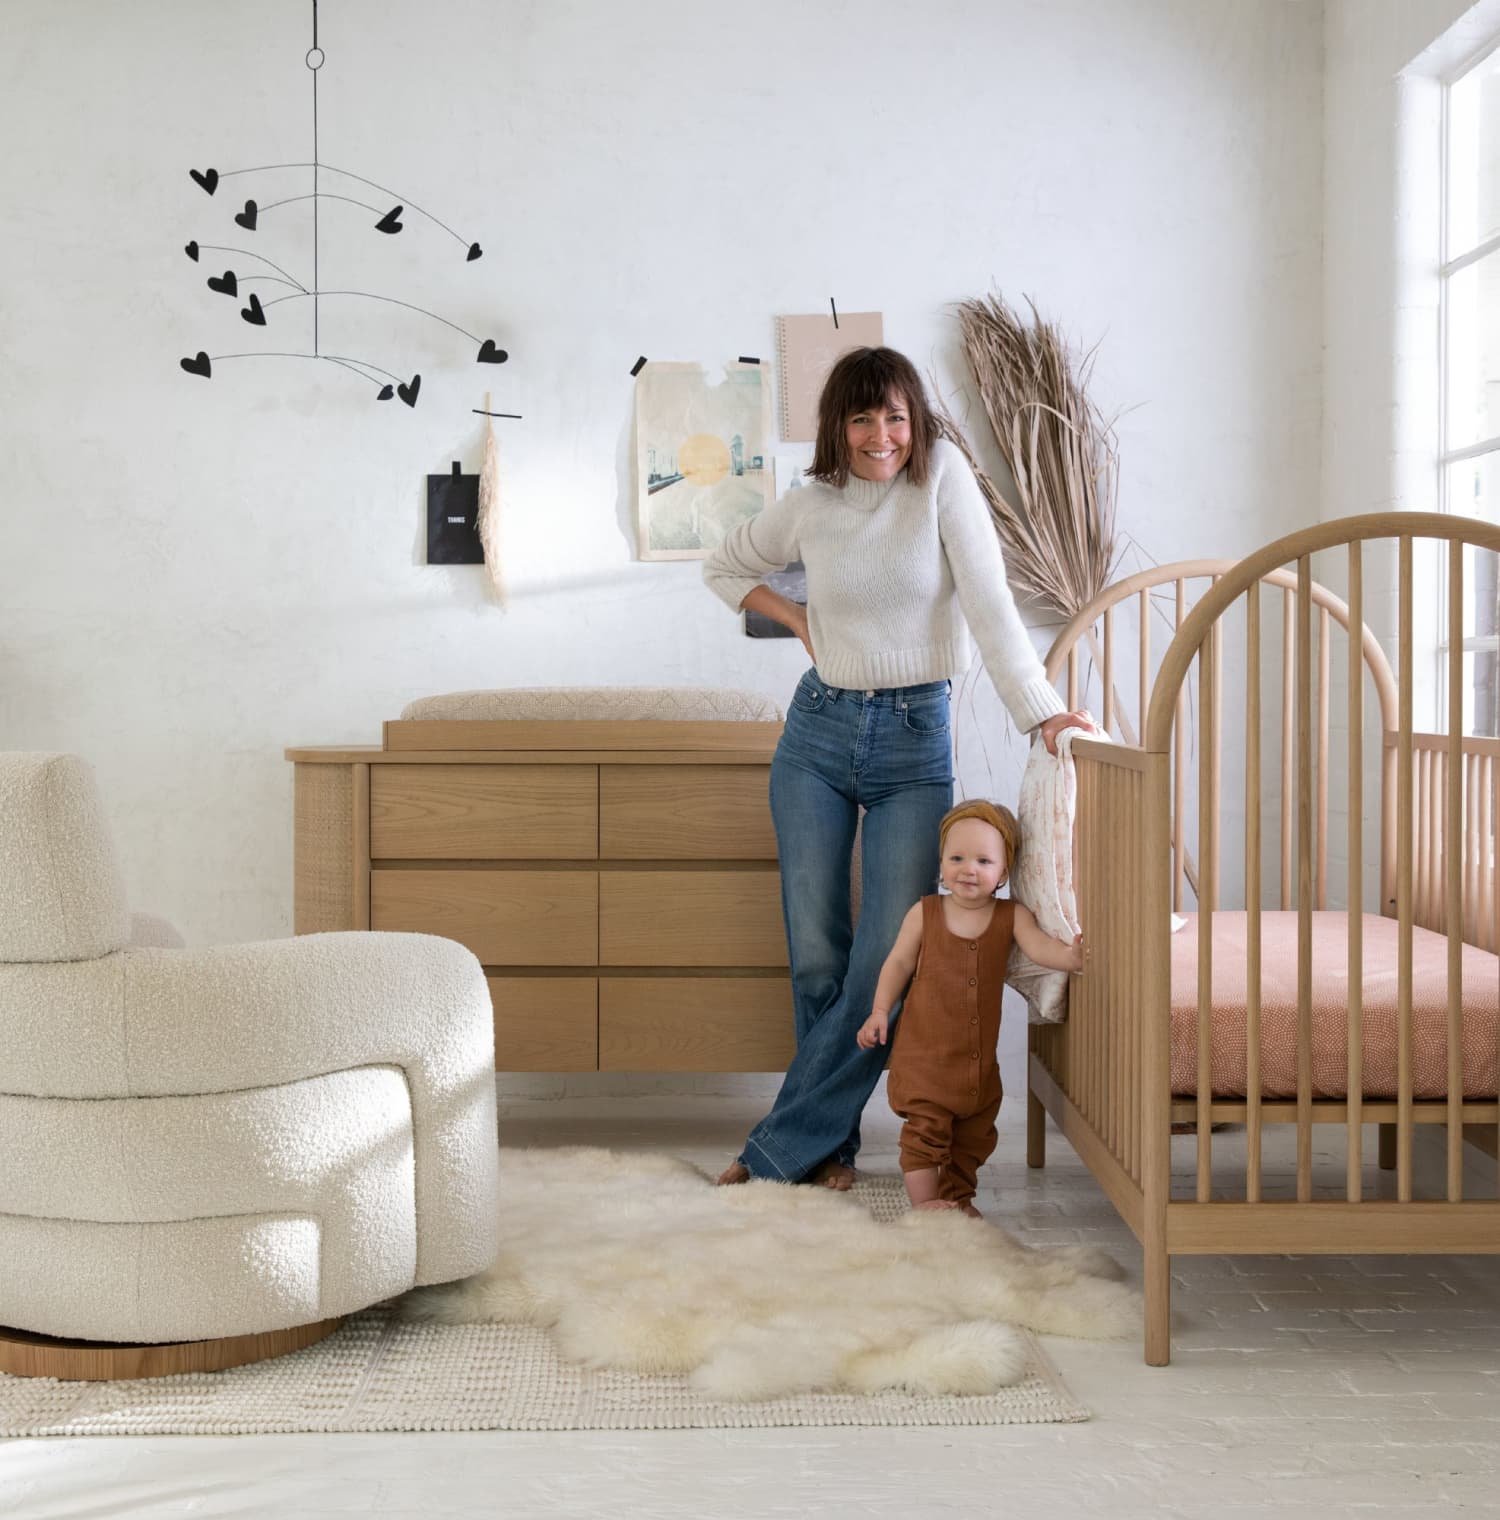 Leanne Ford's New Crate & Barrel Collection Will Make You Want Nursery Furniture in Your Living Room